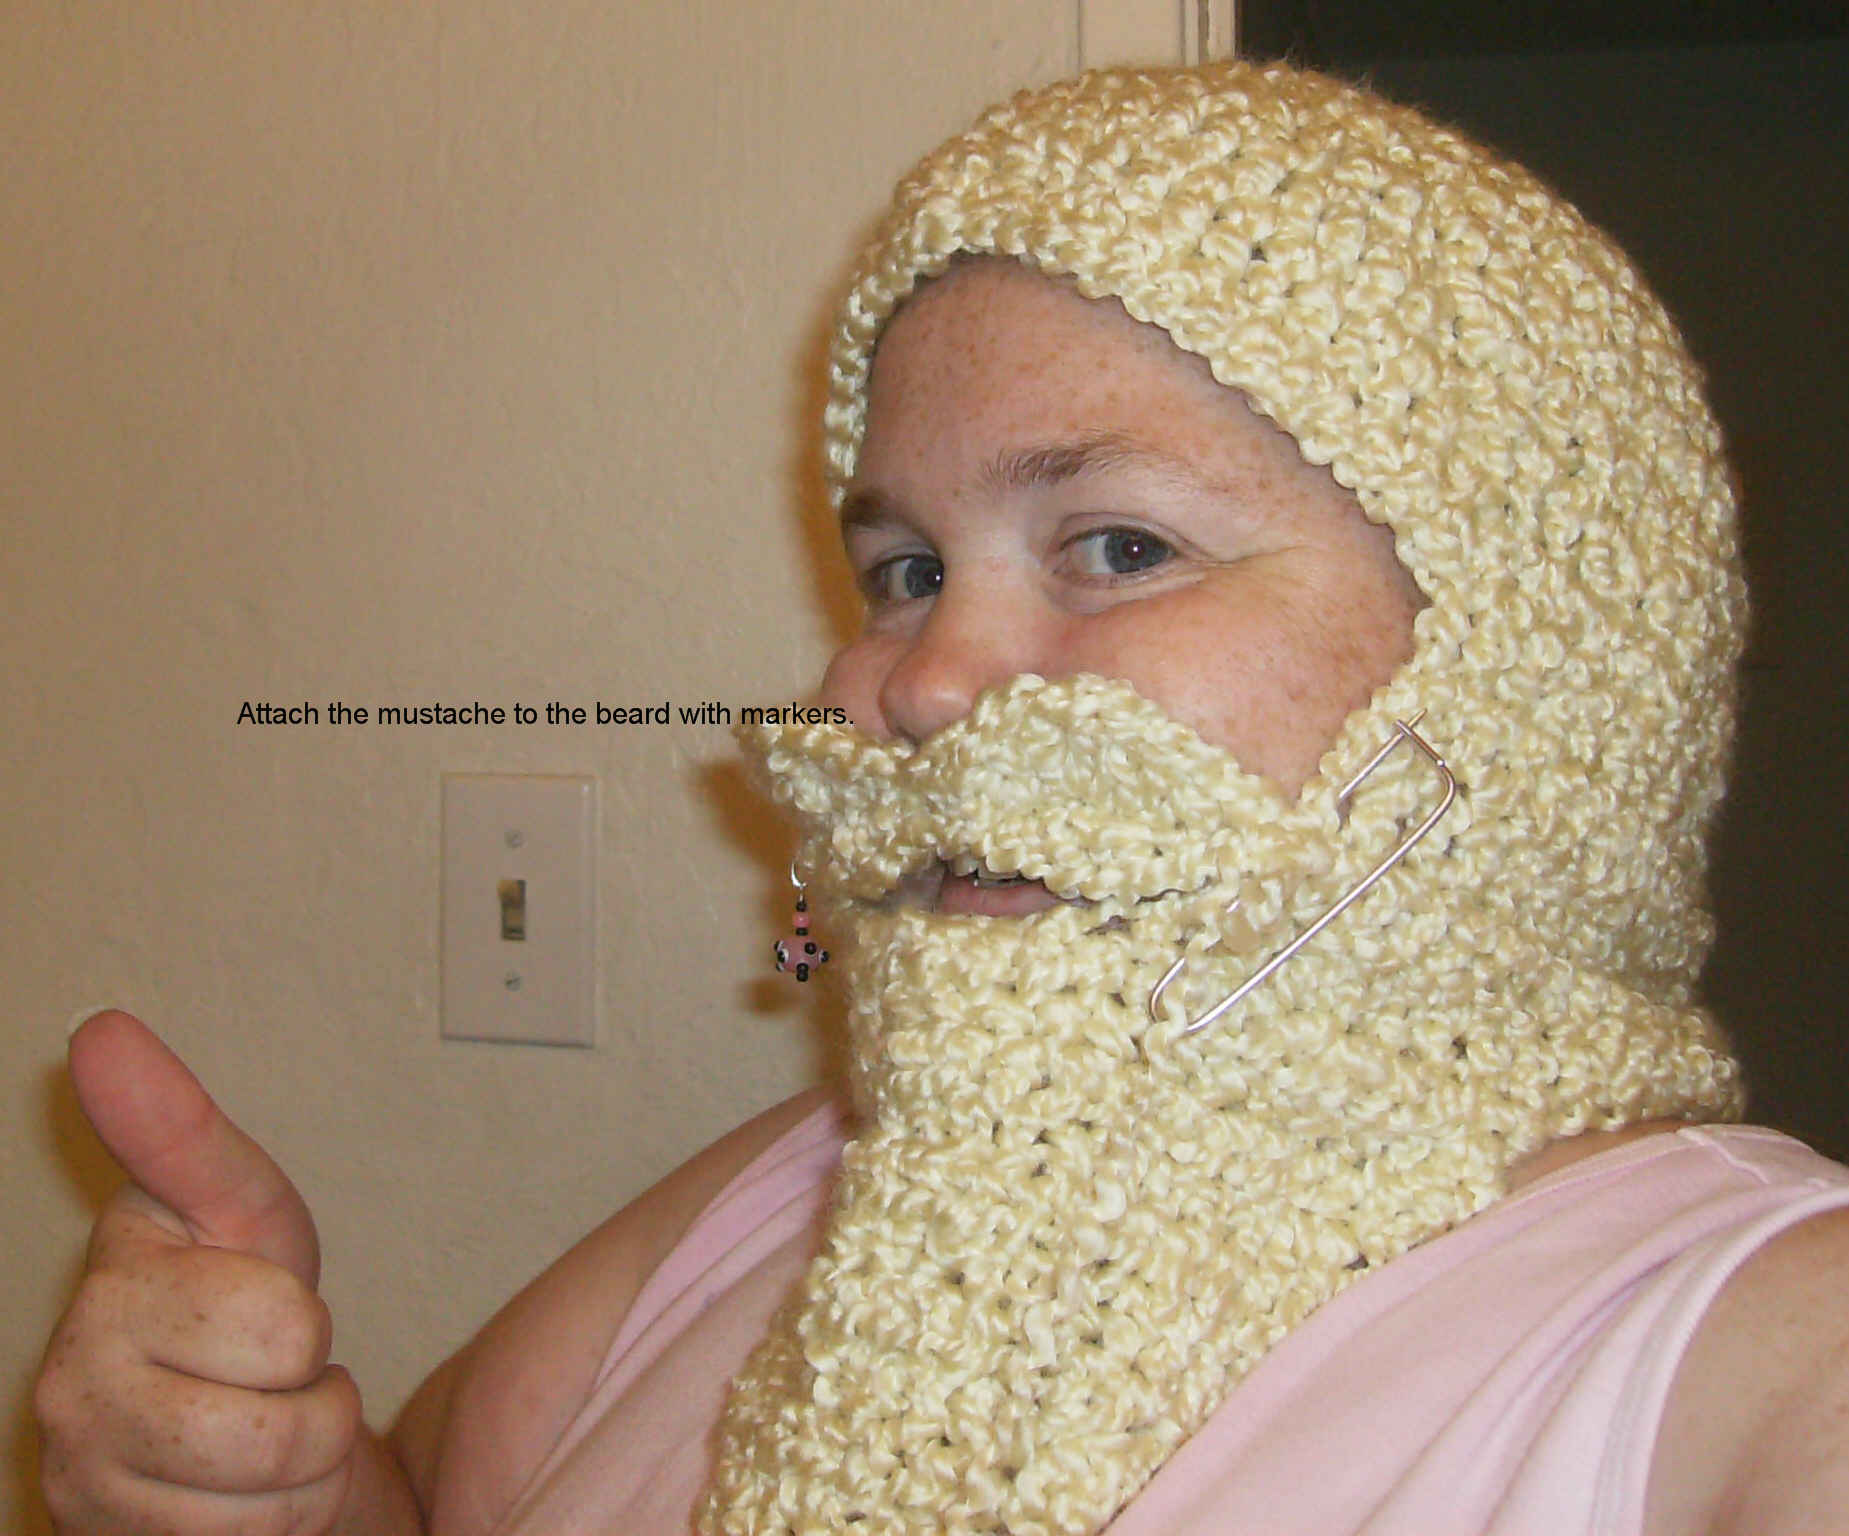 Picture of Trying the 'Beard' on for Size and Sewing the 'Stache On